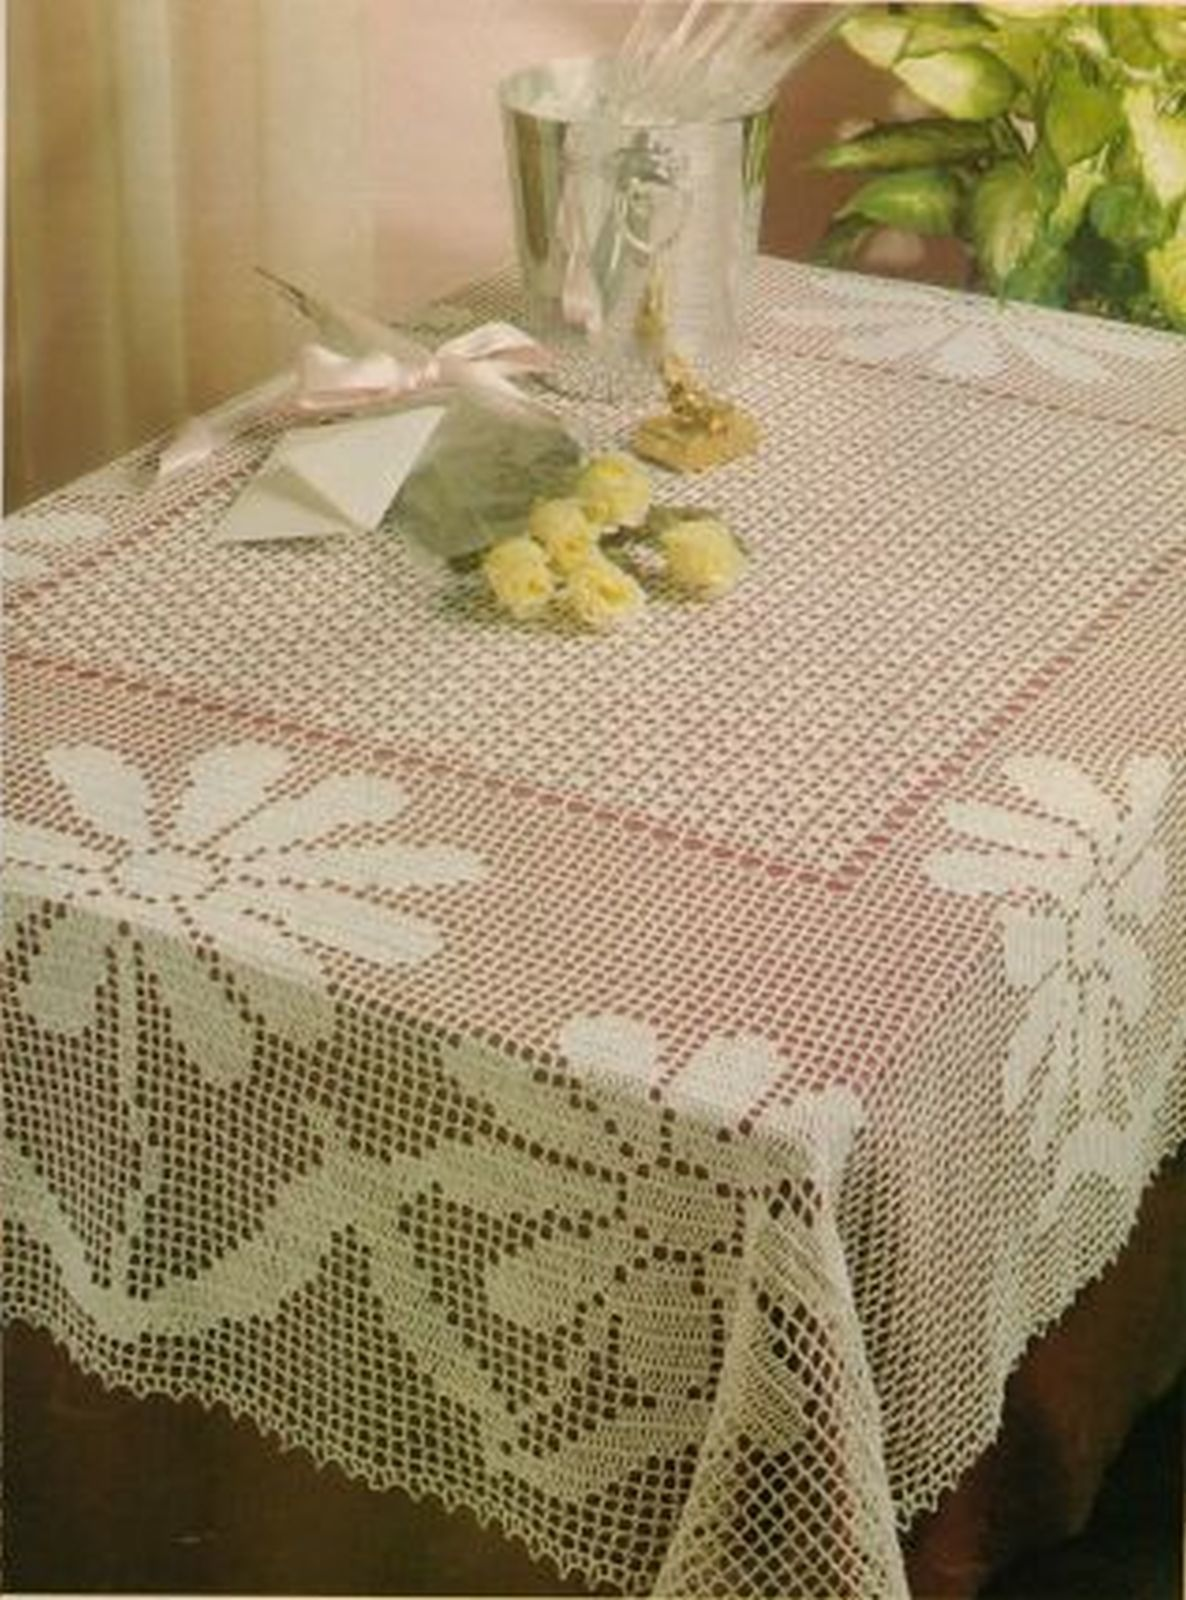 2X Challenging Butterflies Grand Party & Big Day Tablecloth Crochet Patterns image 2